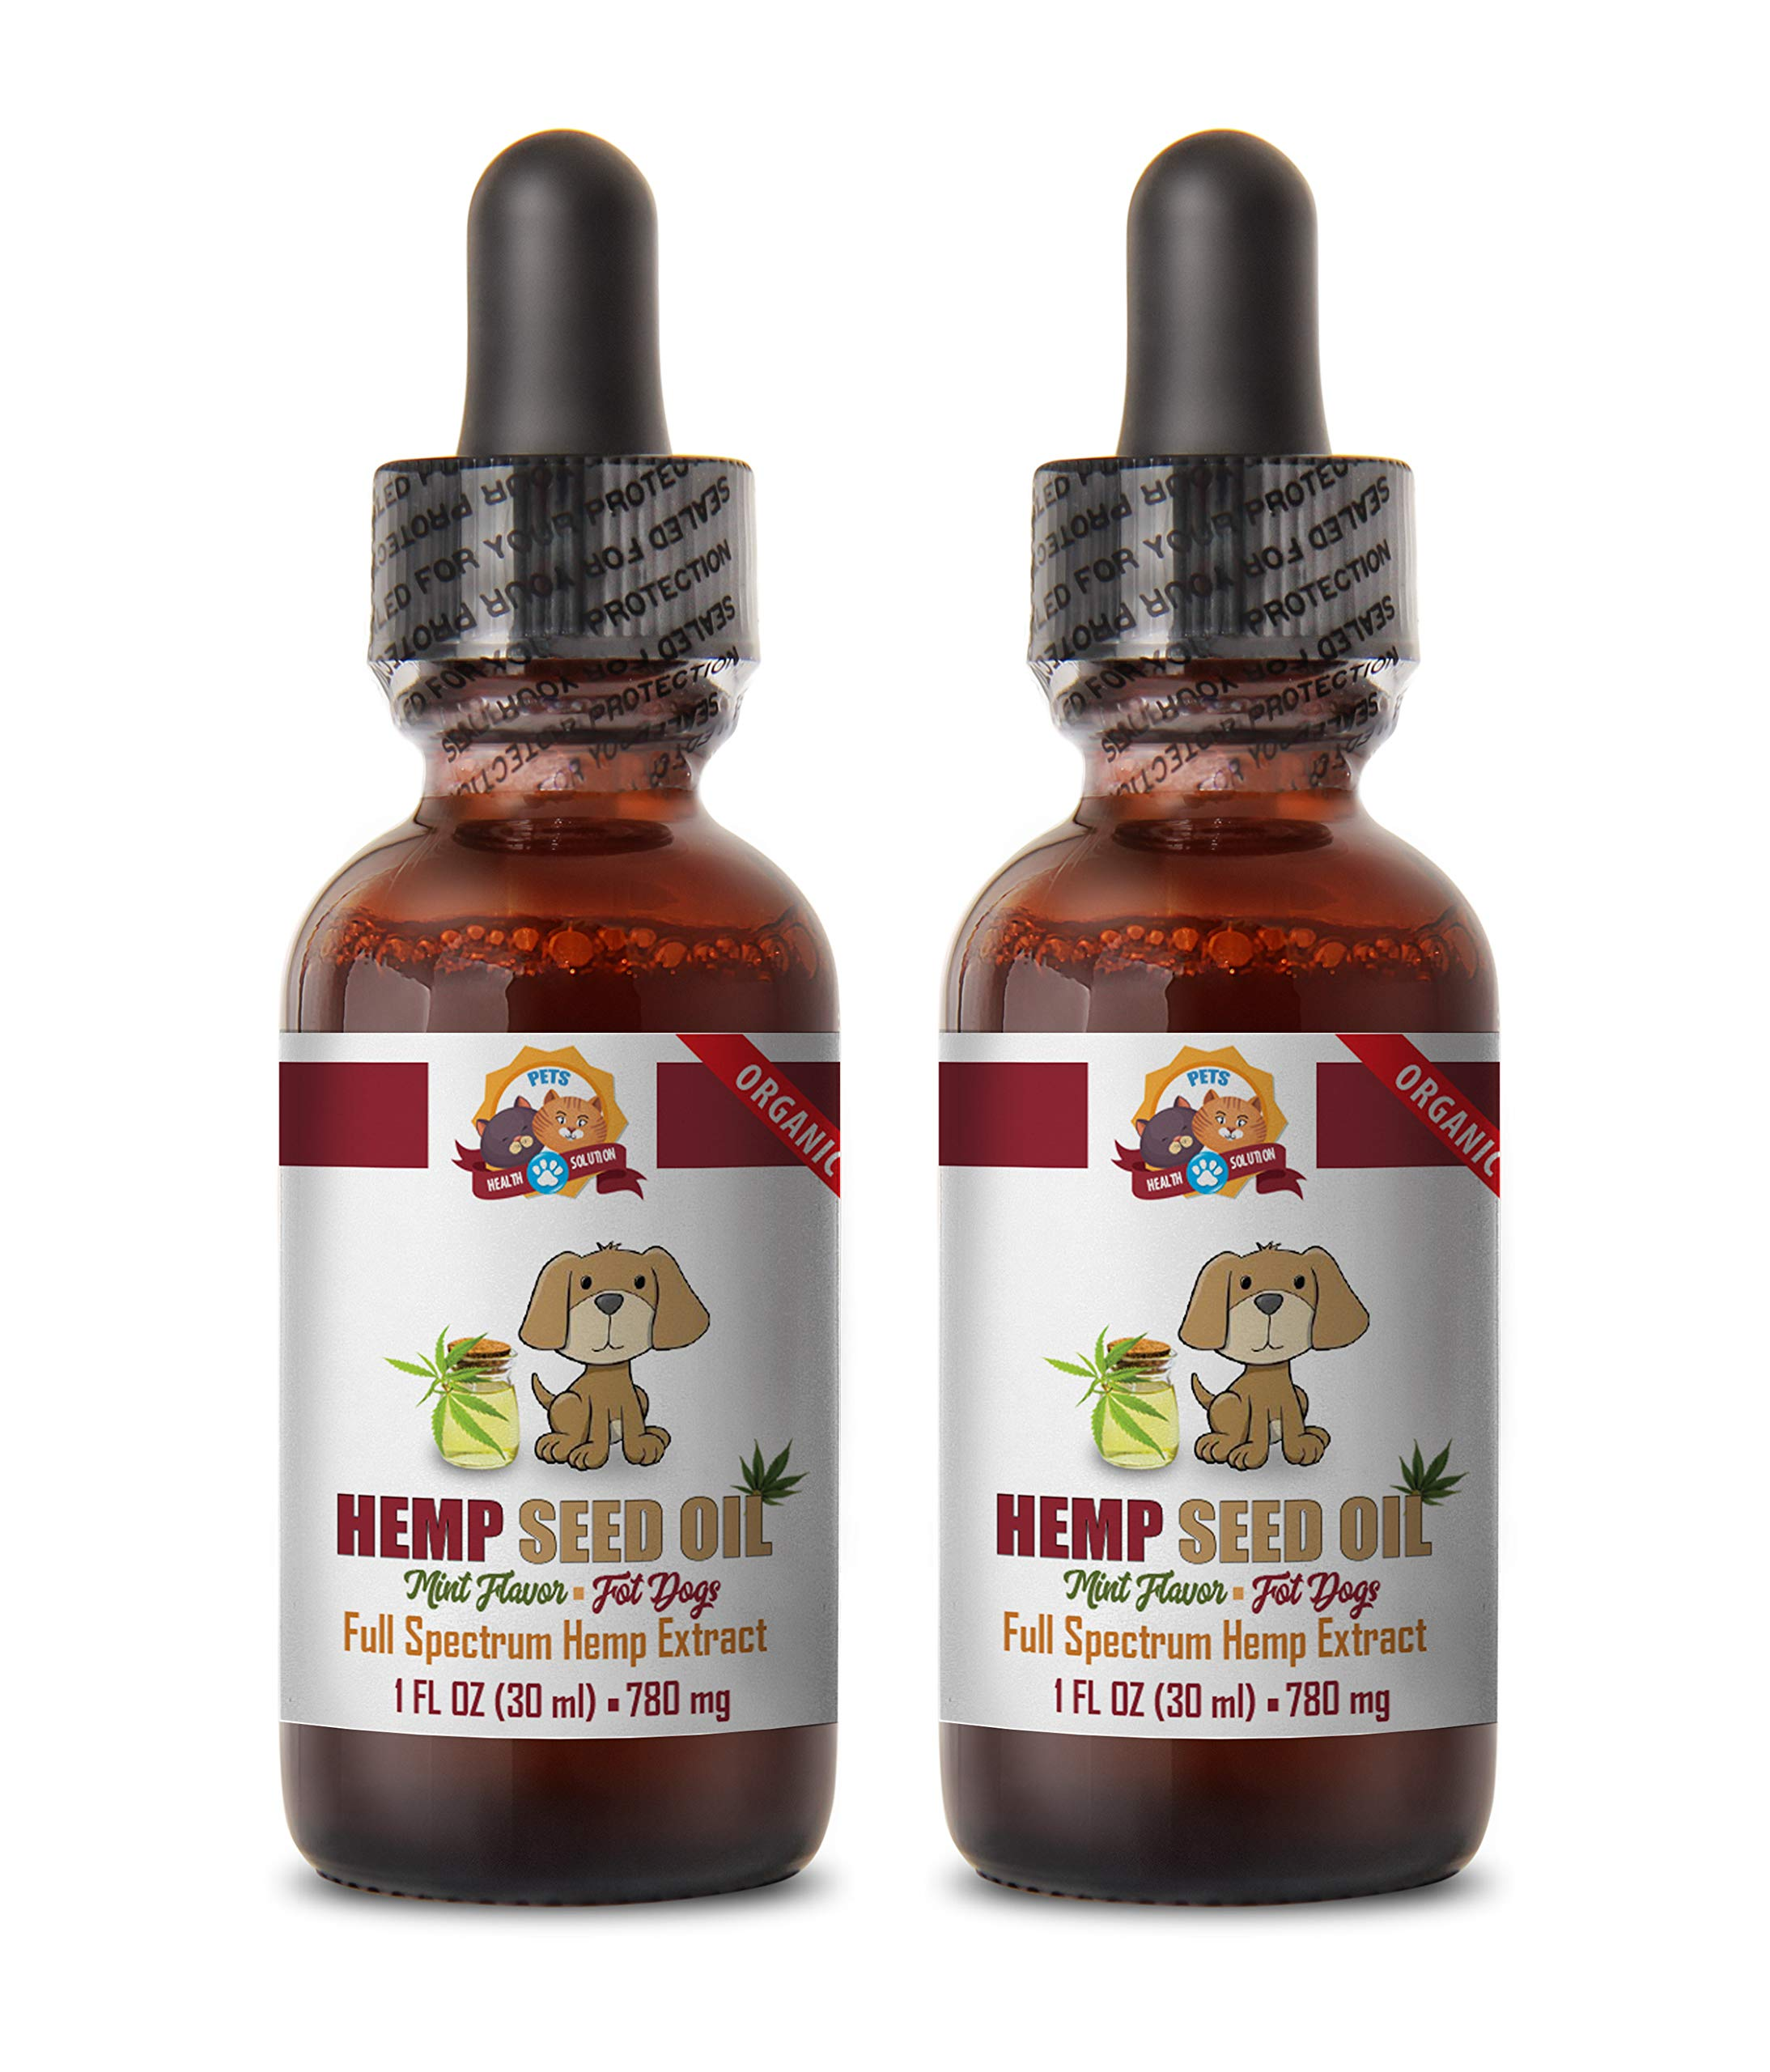 Dog Immune Health - Dog Hemp Seed Oil Extract - Liquid Drops - Omega Fatty ACIDS - Natural Healthy Benefits - Dog Hemp Supplement - 2 Bottles (60 ML) by PETS HEALTH SOLUTION